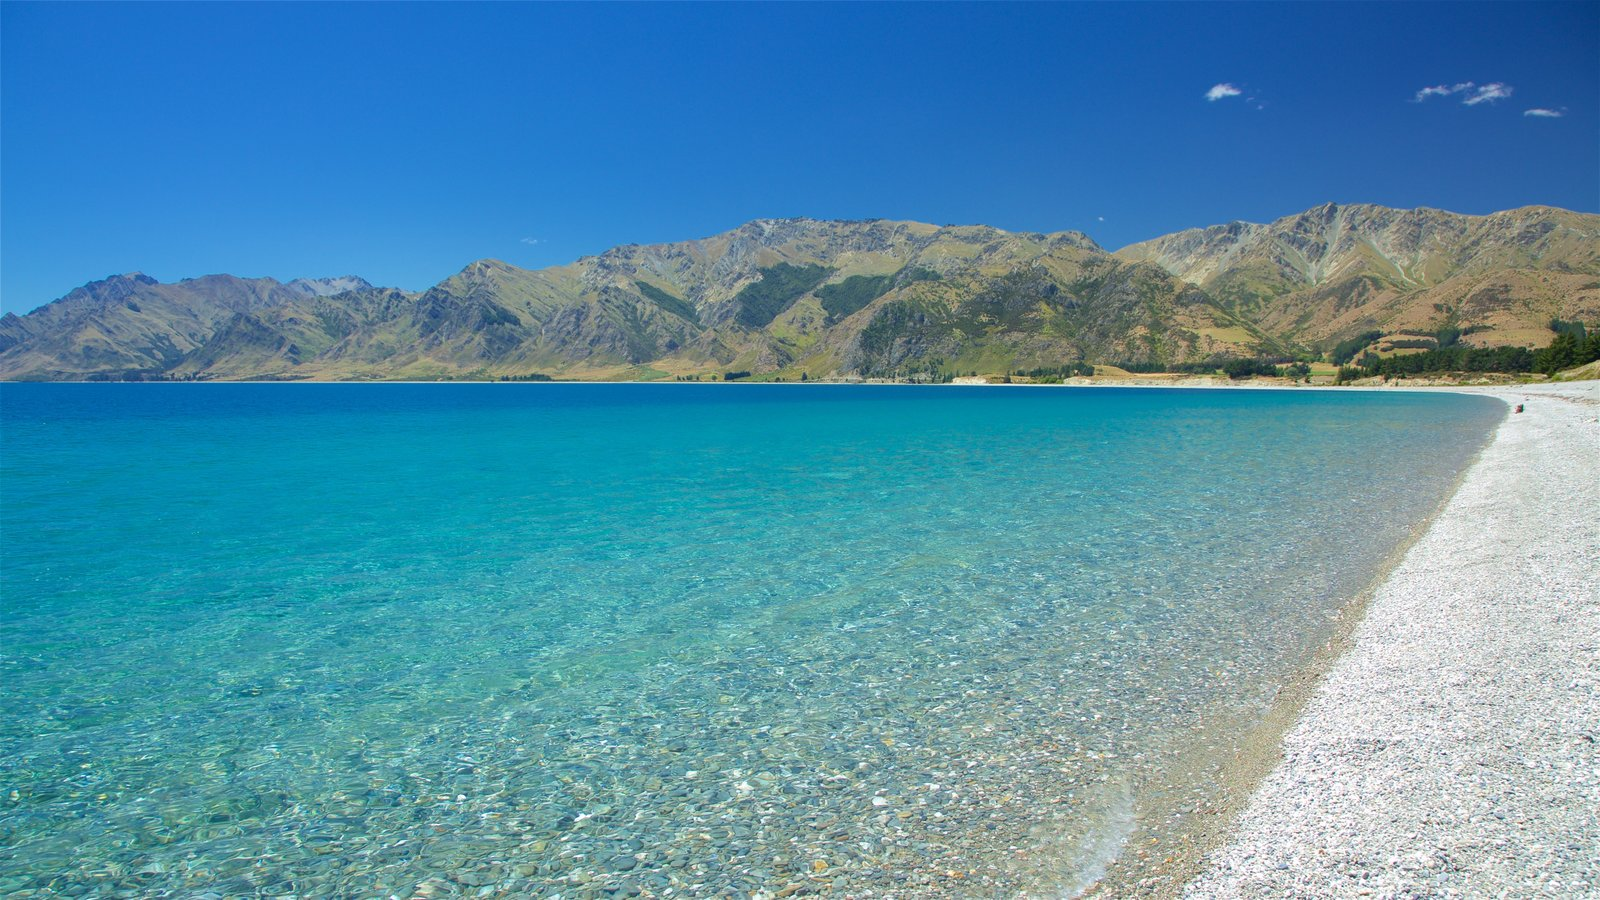 Lake Hawea which includes mountains and a lake or waterhole